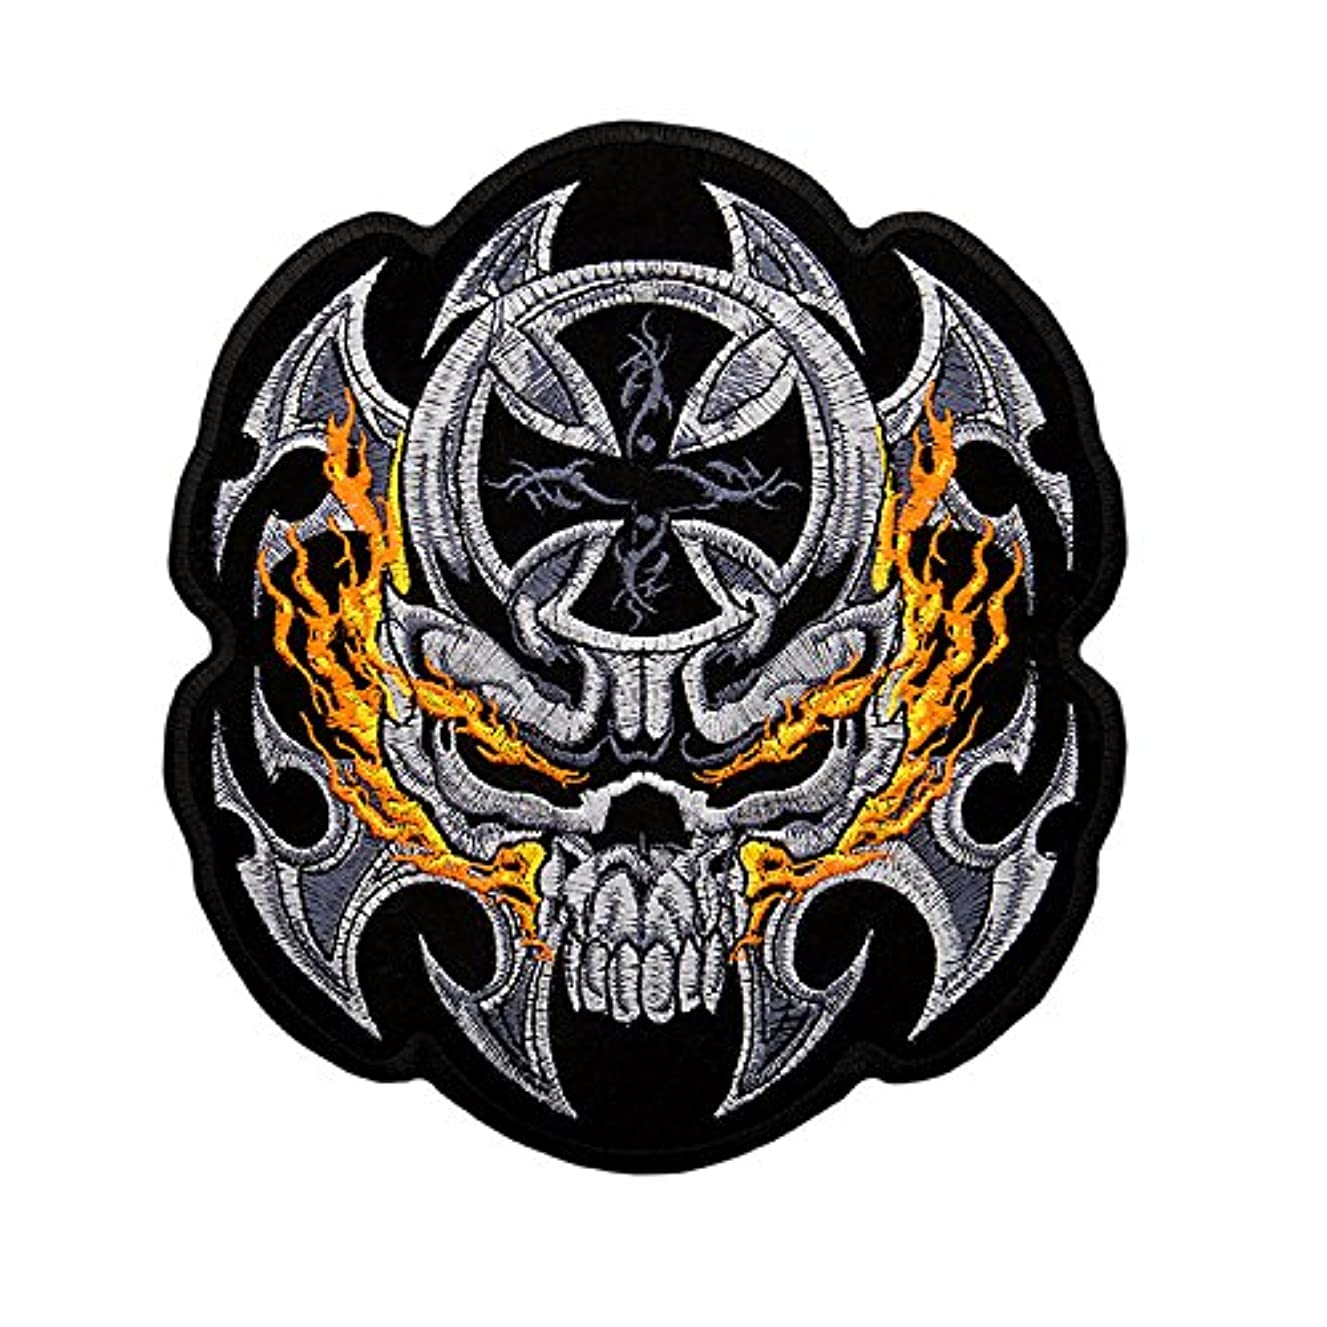 Large Patches, Delicate Embroidered Patches, Skull Embroidery Patches, Iron On Patches, Skull Patch, Punk Patches, Snake Patches, Sew On Applique Patch, Custom Patches for Men, Boys, SUPER COOL! (# 4)